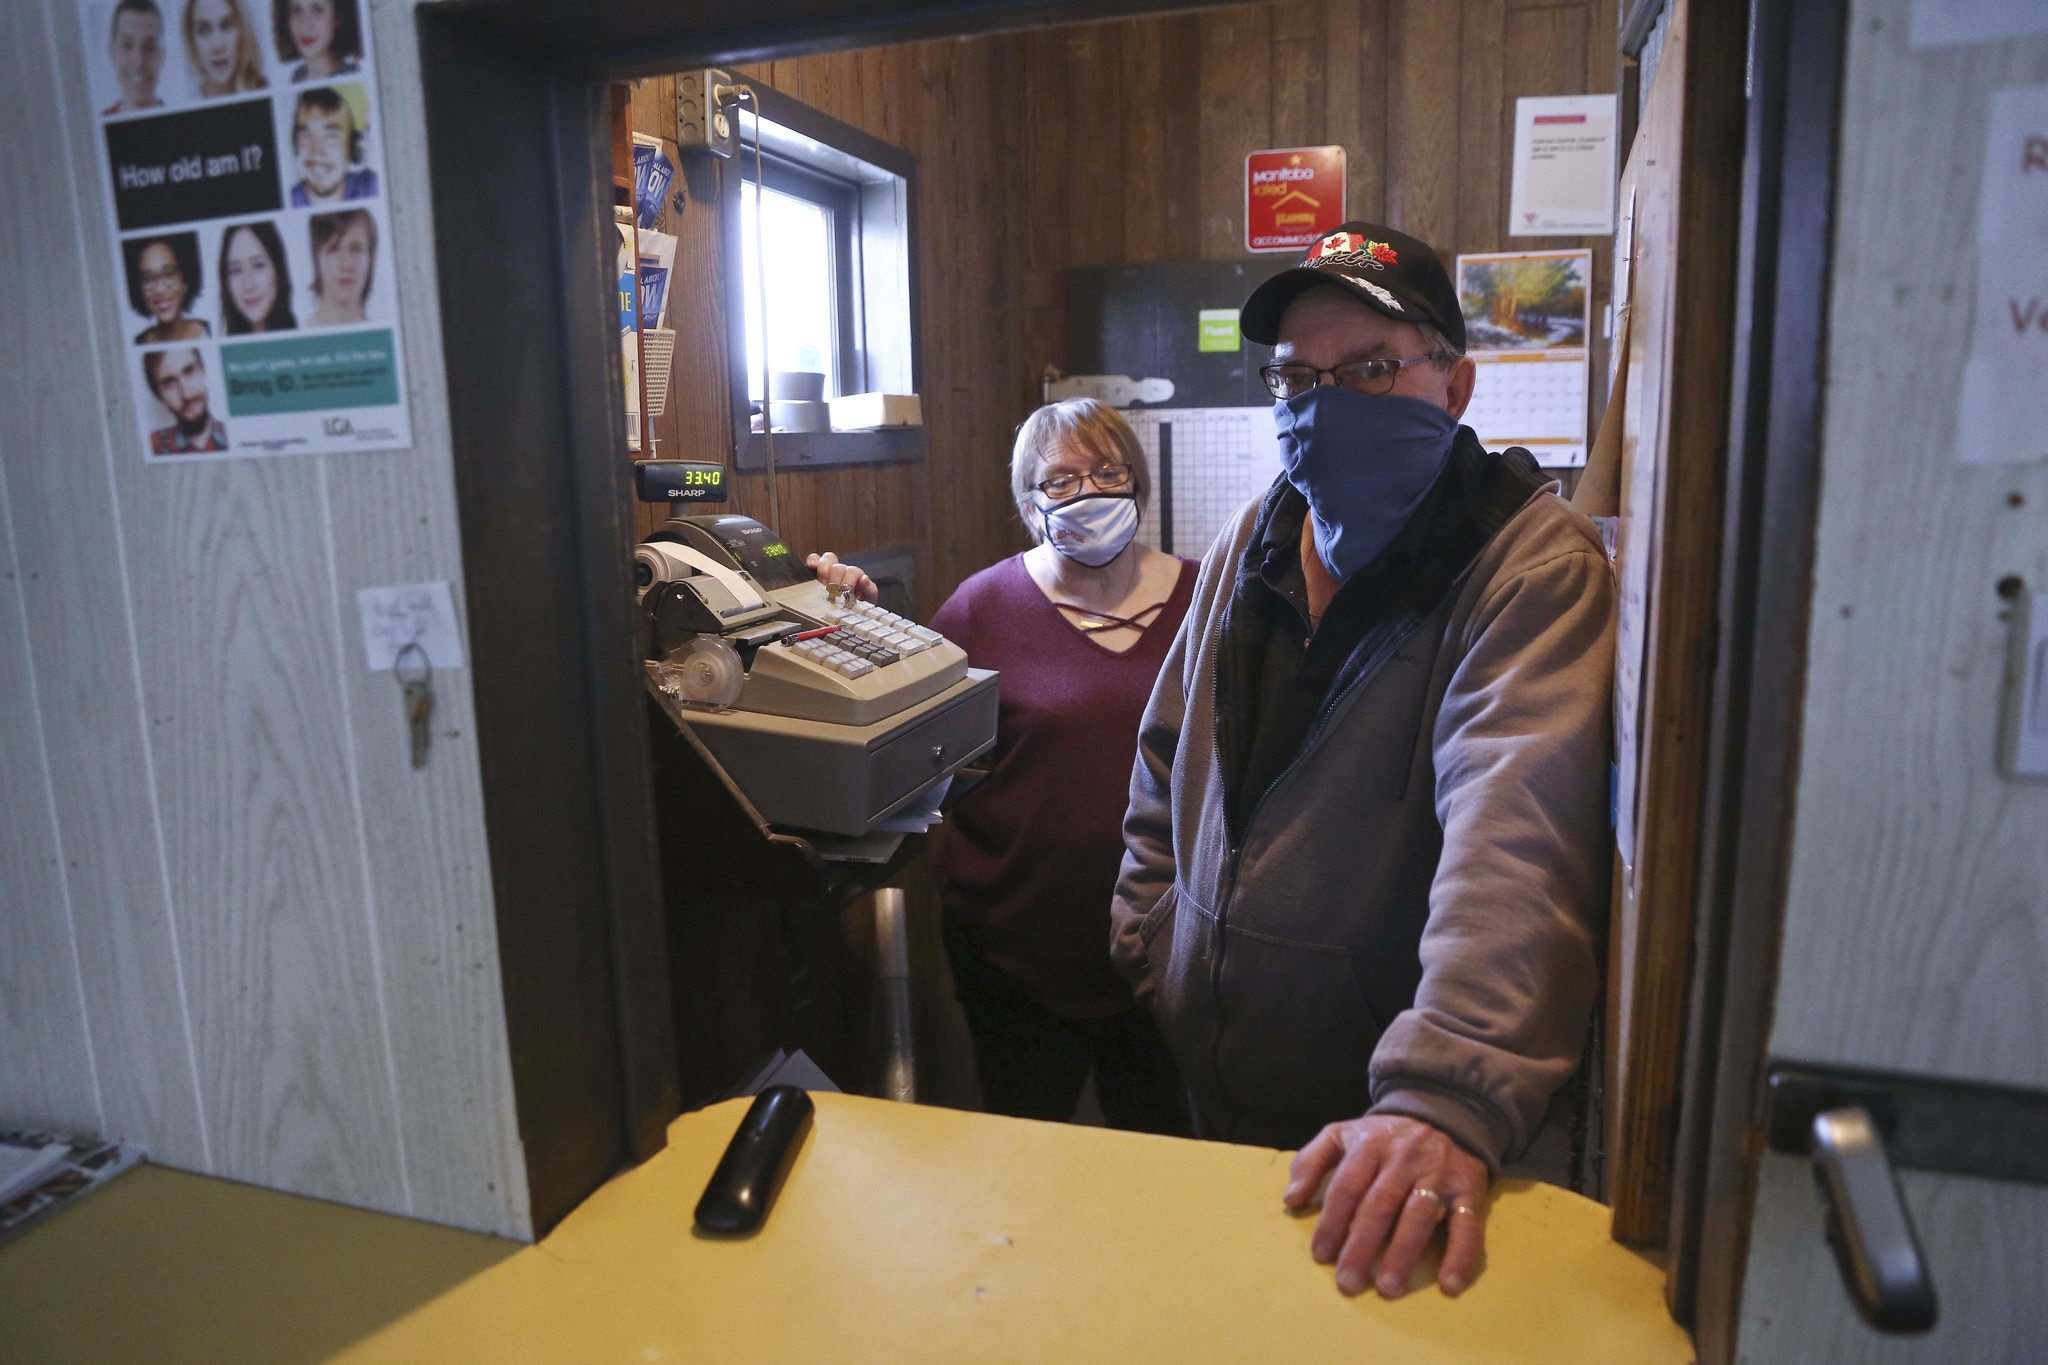 Bob and Bev Fuglsang were recently given a ticket for violating the province's pandemic restrictions. The couple now have to figure out the appeal process for what they are saying is a false accusation.